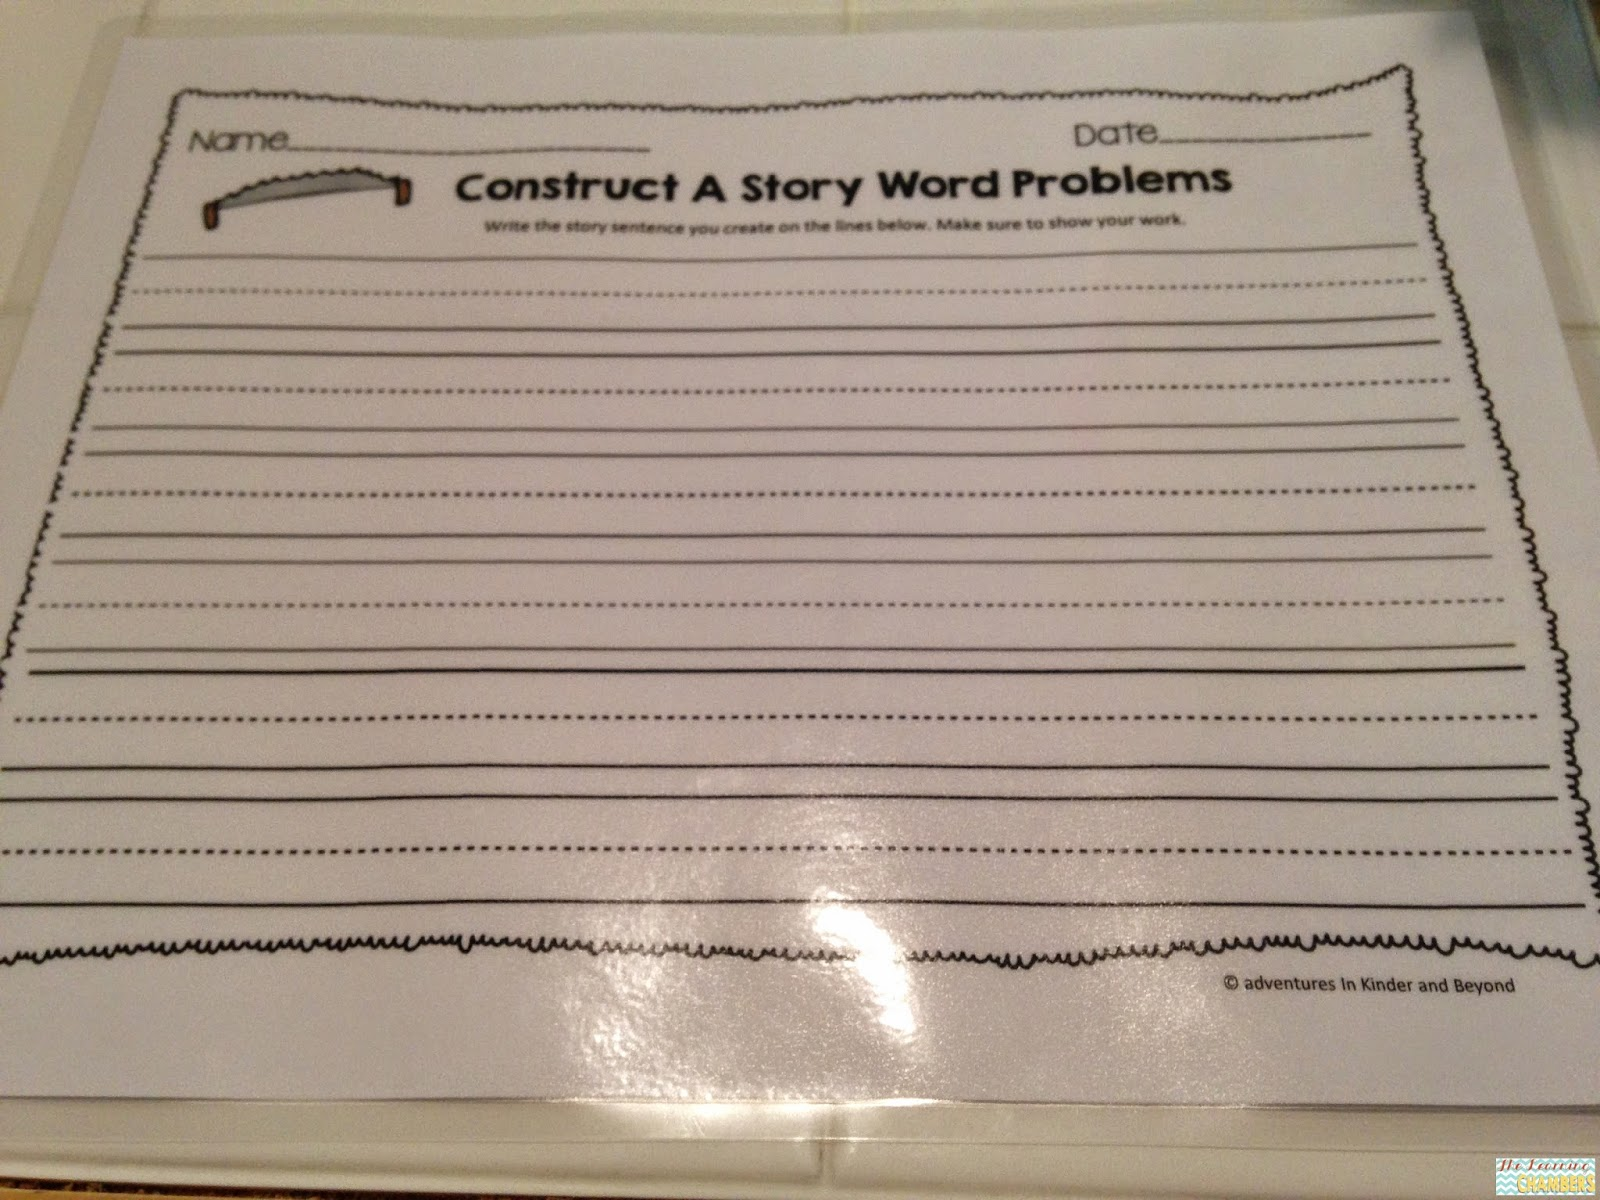 http://www.teacherspayteachers.com/Product/Differentiated-Addition-and-Subtraction-Word-Problems-Construct-A-Story-1211622